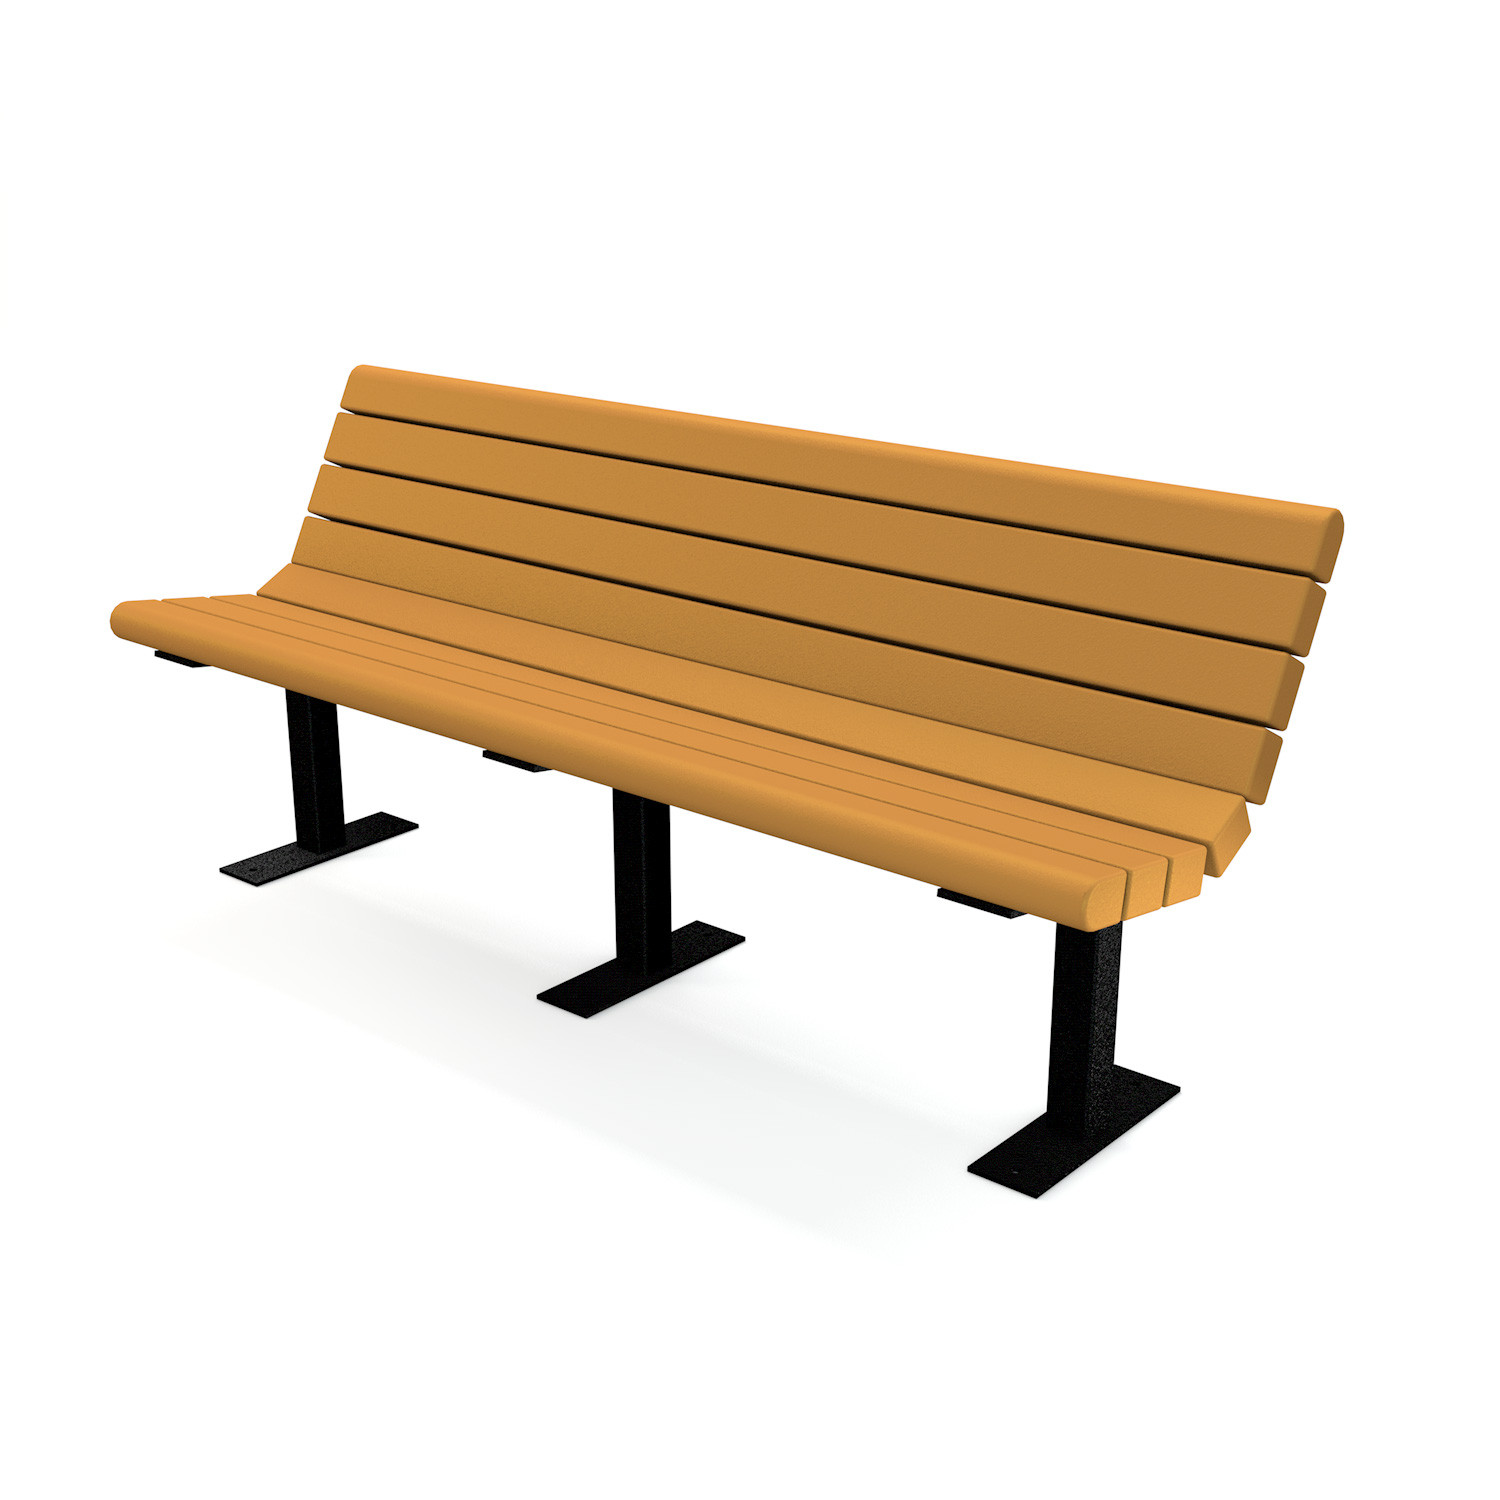 Jameson Recycled Plastic Bench